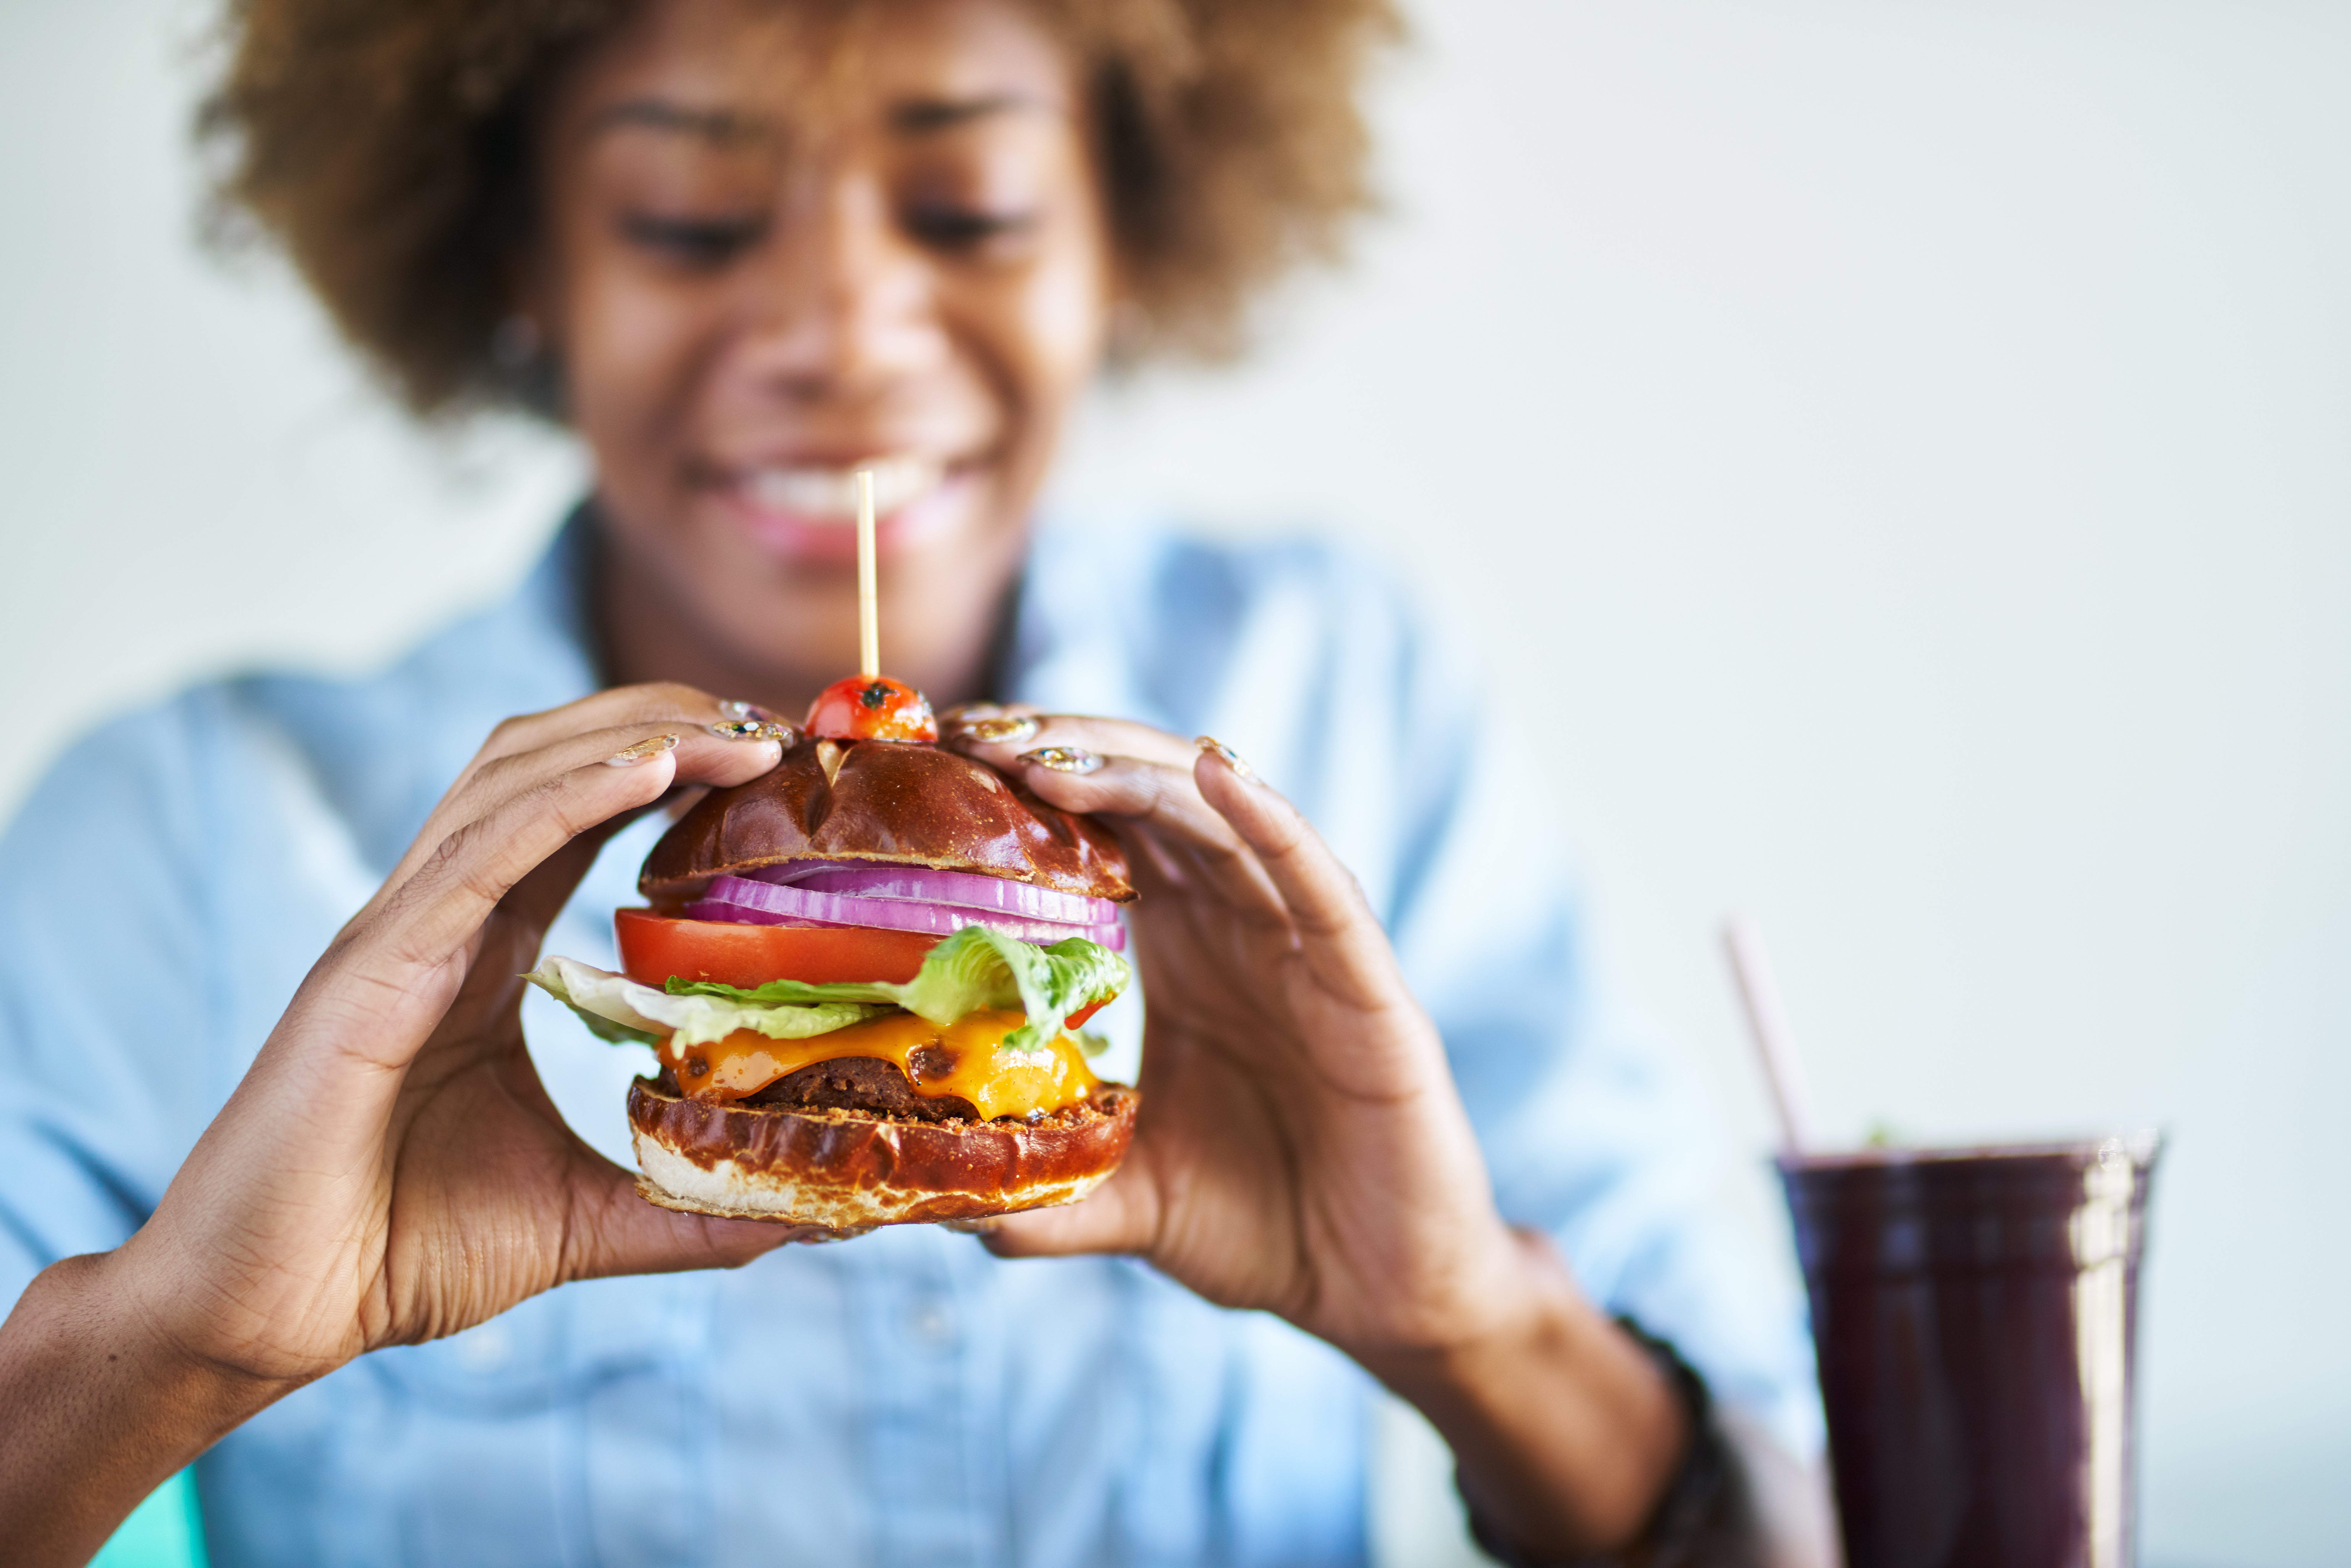 These Juicy Burger Recipes Put New Spins On A Classic Dish